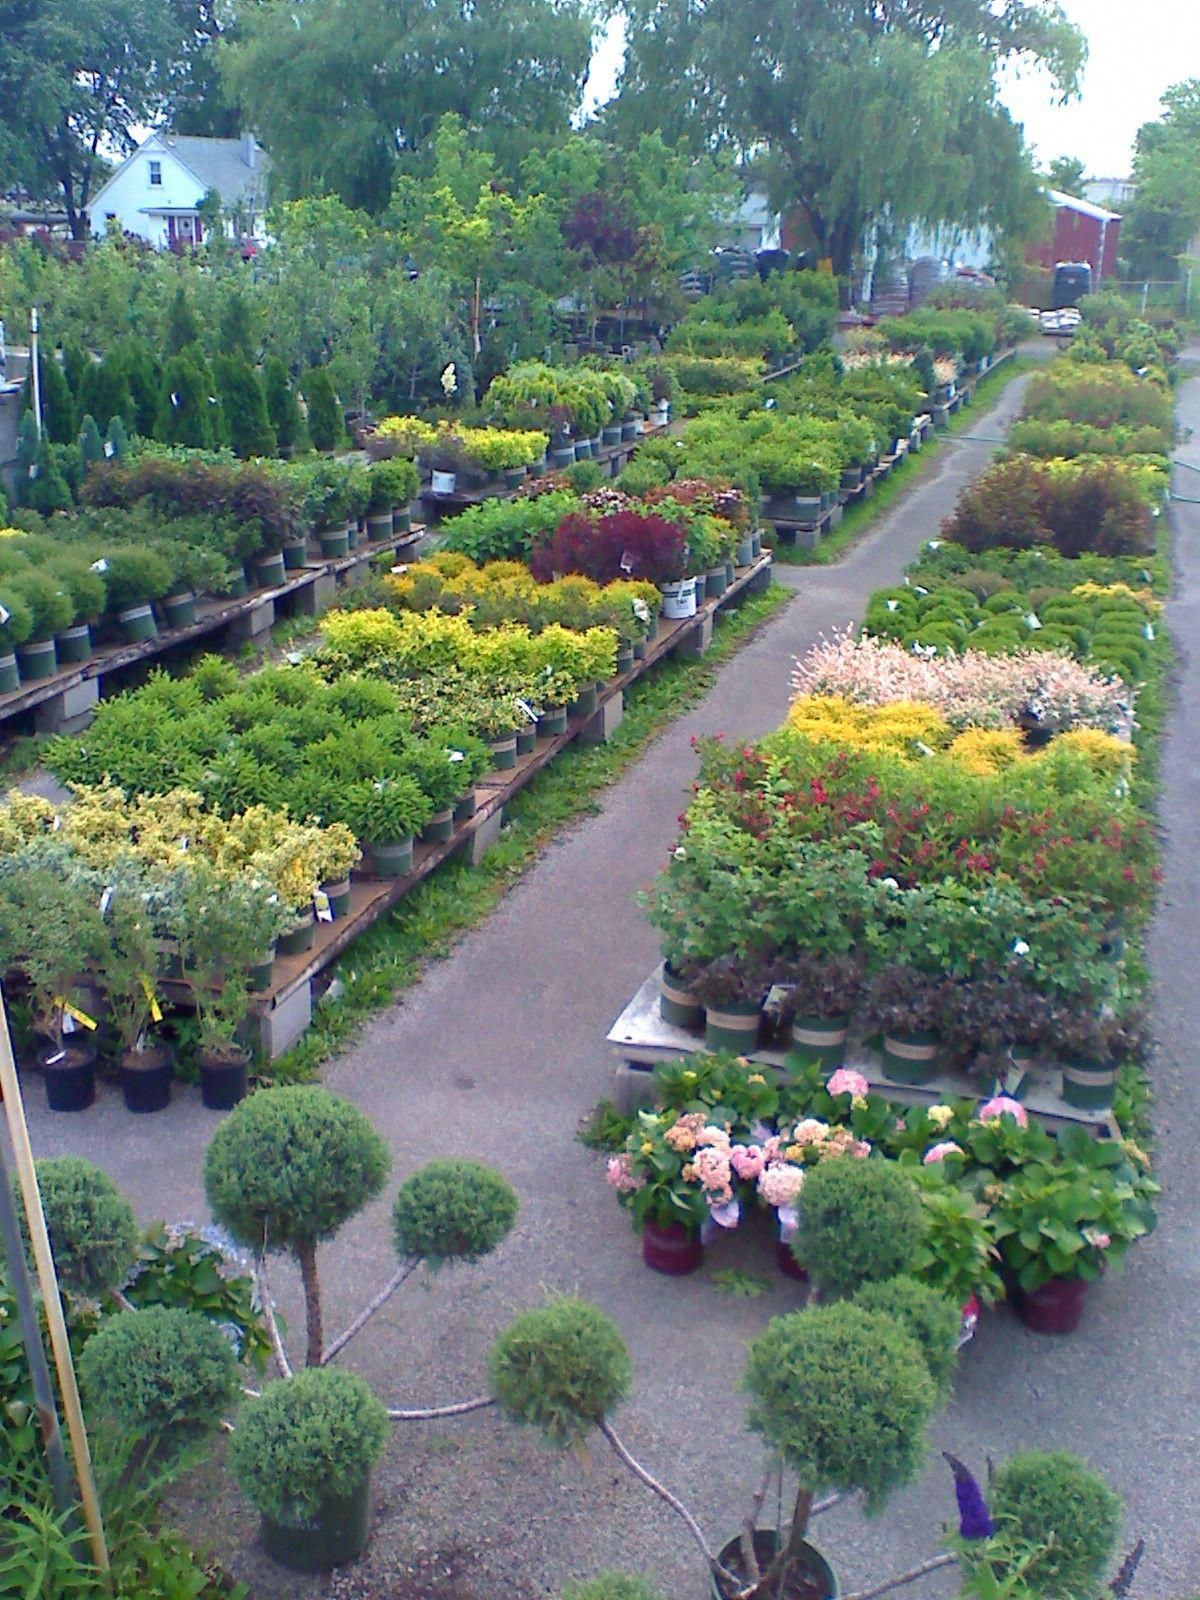 Clarke S Garden Center In Lynwood Il Family Owned And Operated